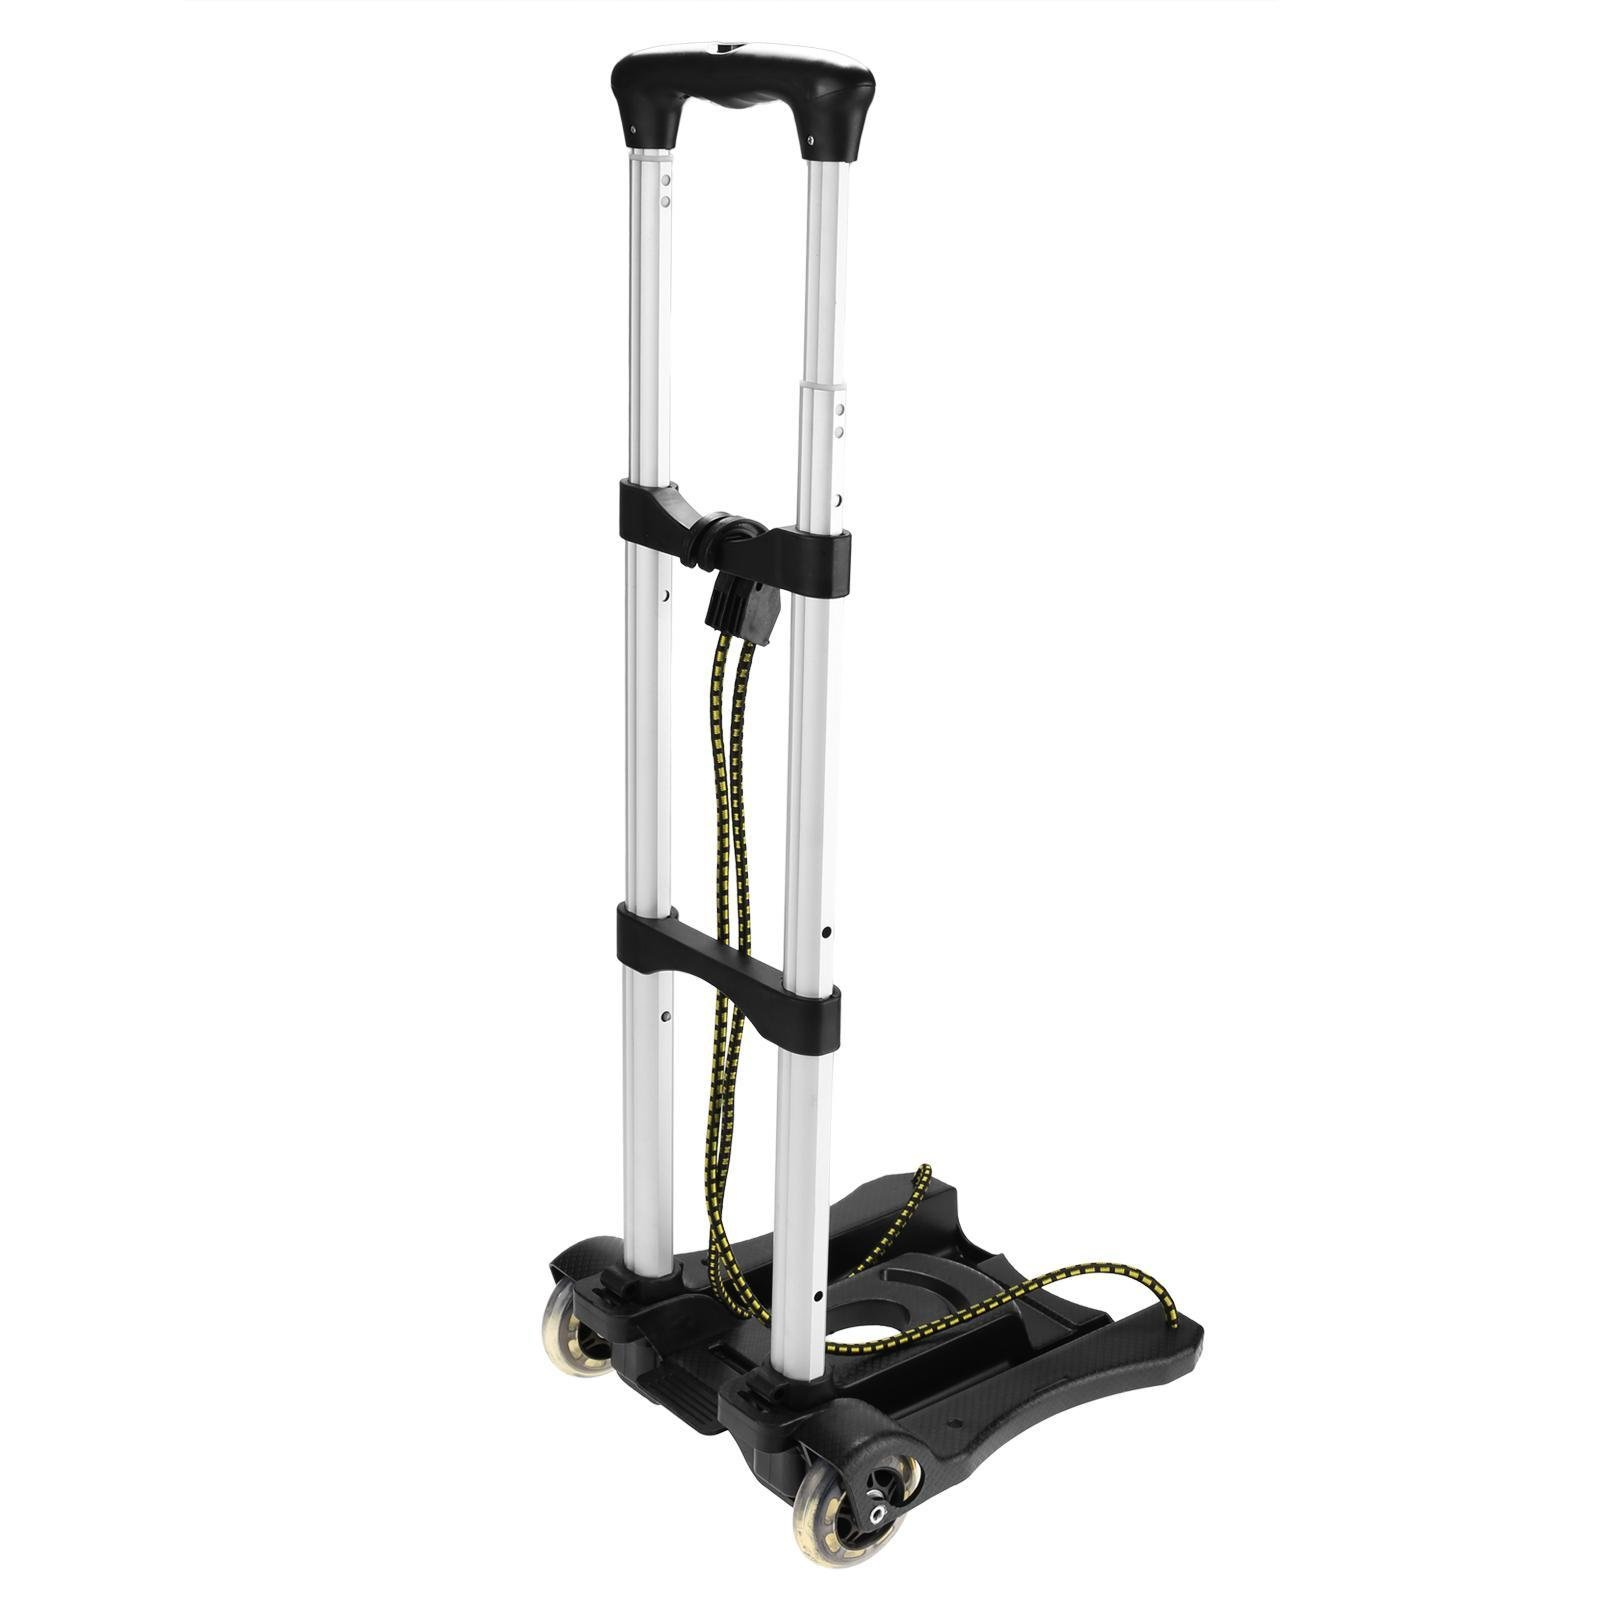 Creine Aluminum Folding Luggage Cart Portable Hand Truck with 2 Wheels, Compact and Lightweight for Shopping Travel Black by Creine (Image #2)